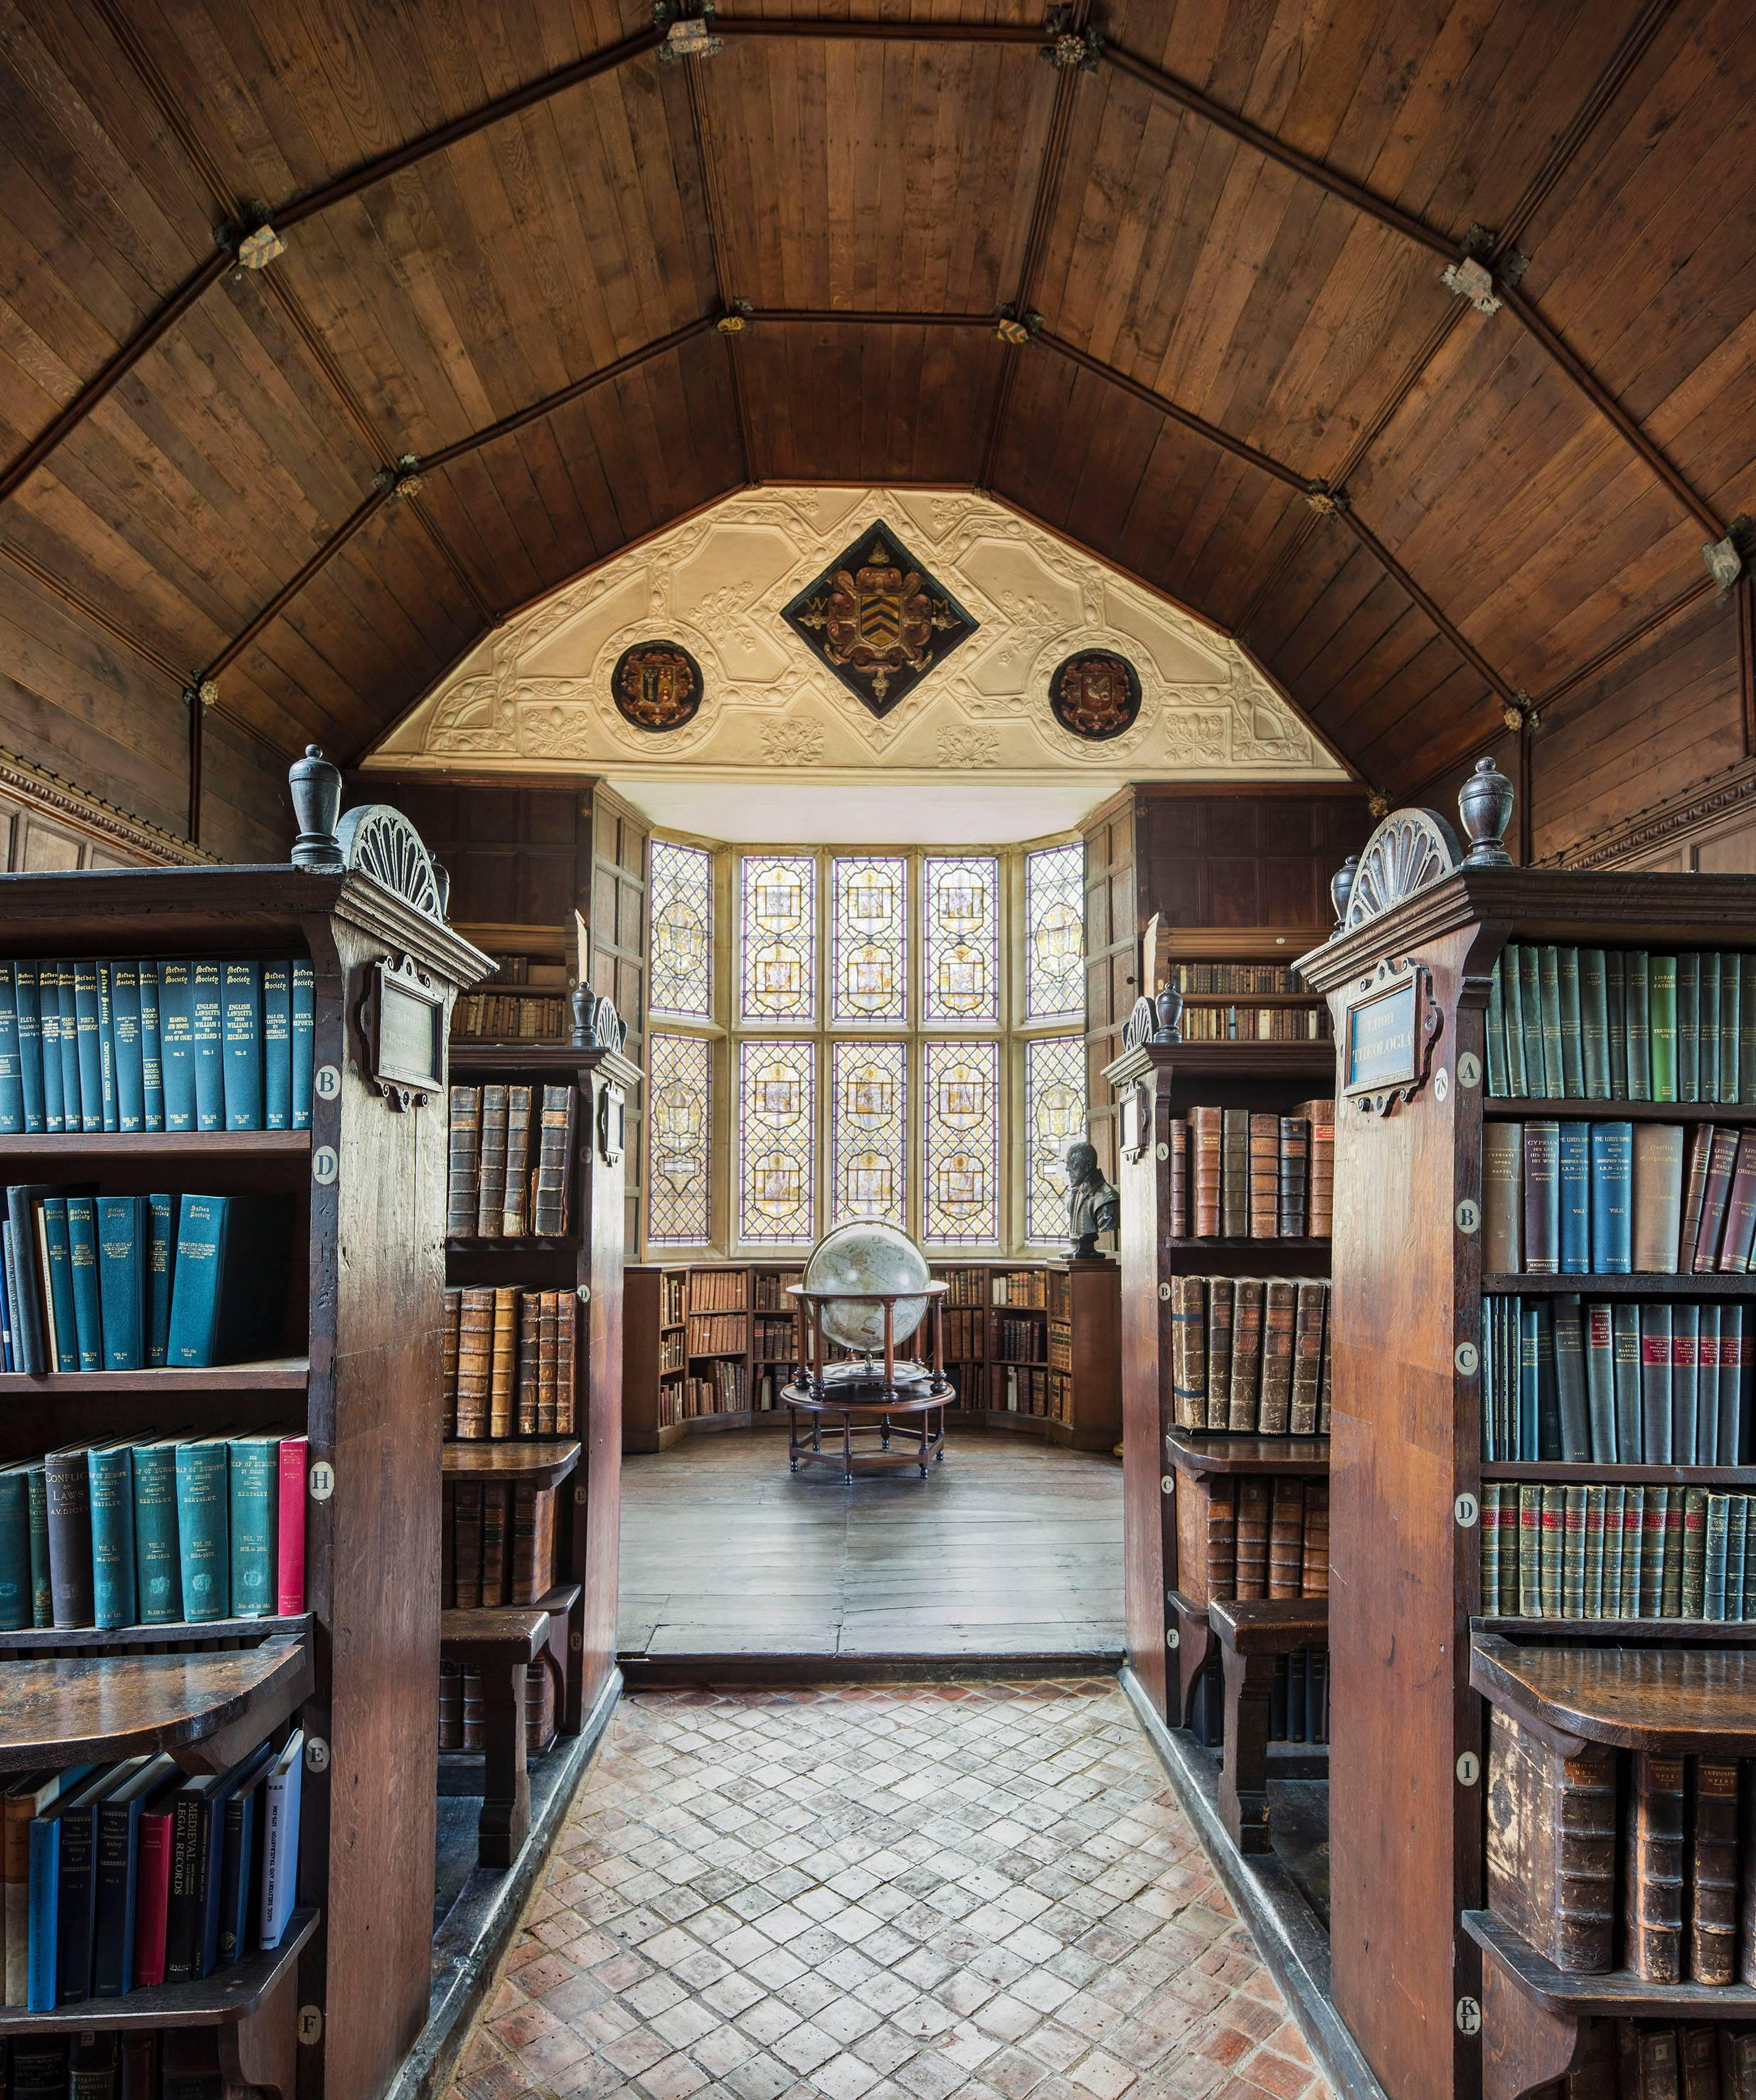 The Blue Books, The Upper Library, Oxford, England